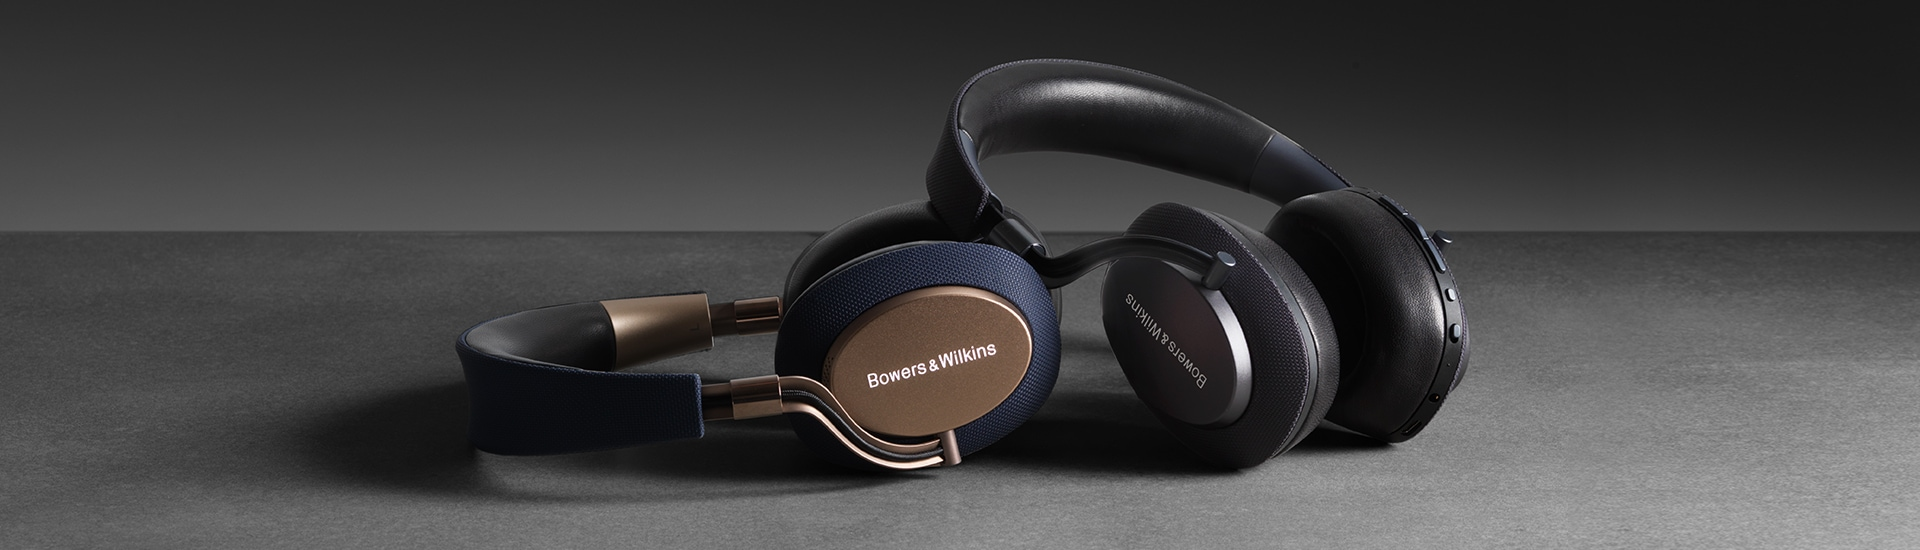 How To Choose Headphones That Are Right For You World Wide Stereo